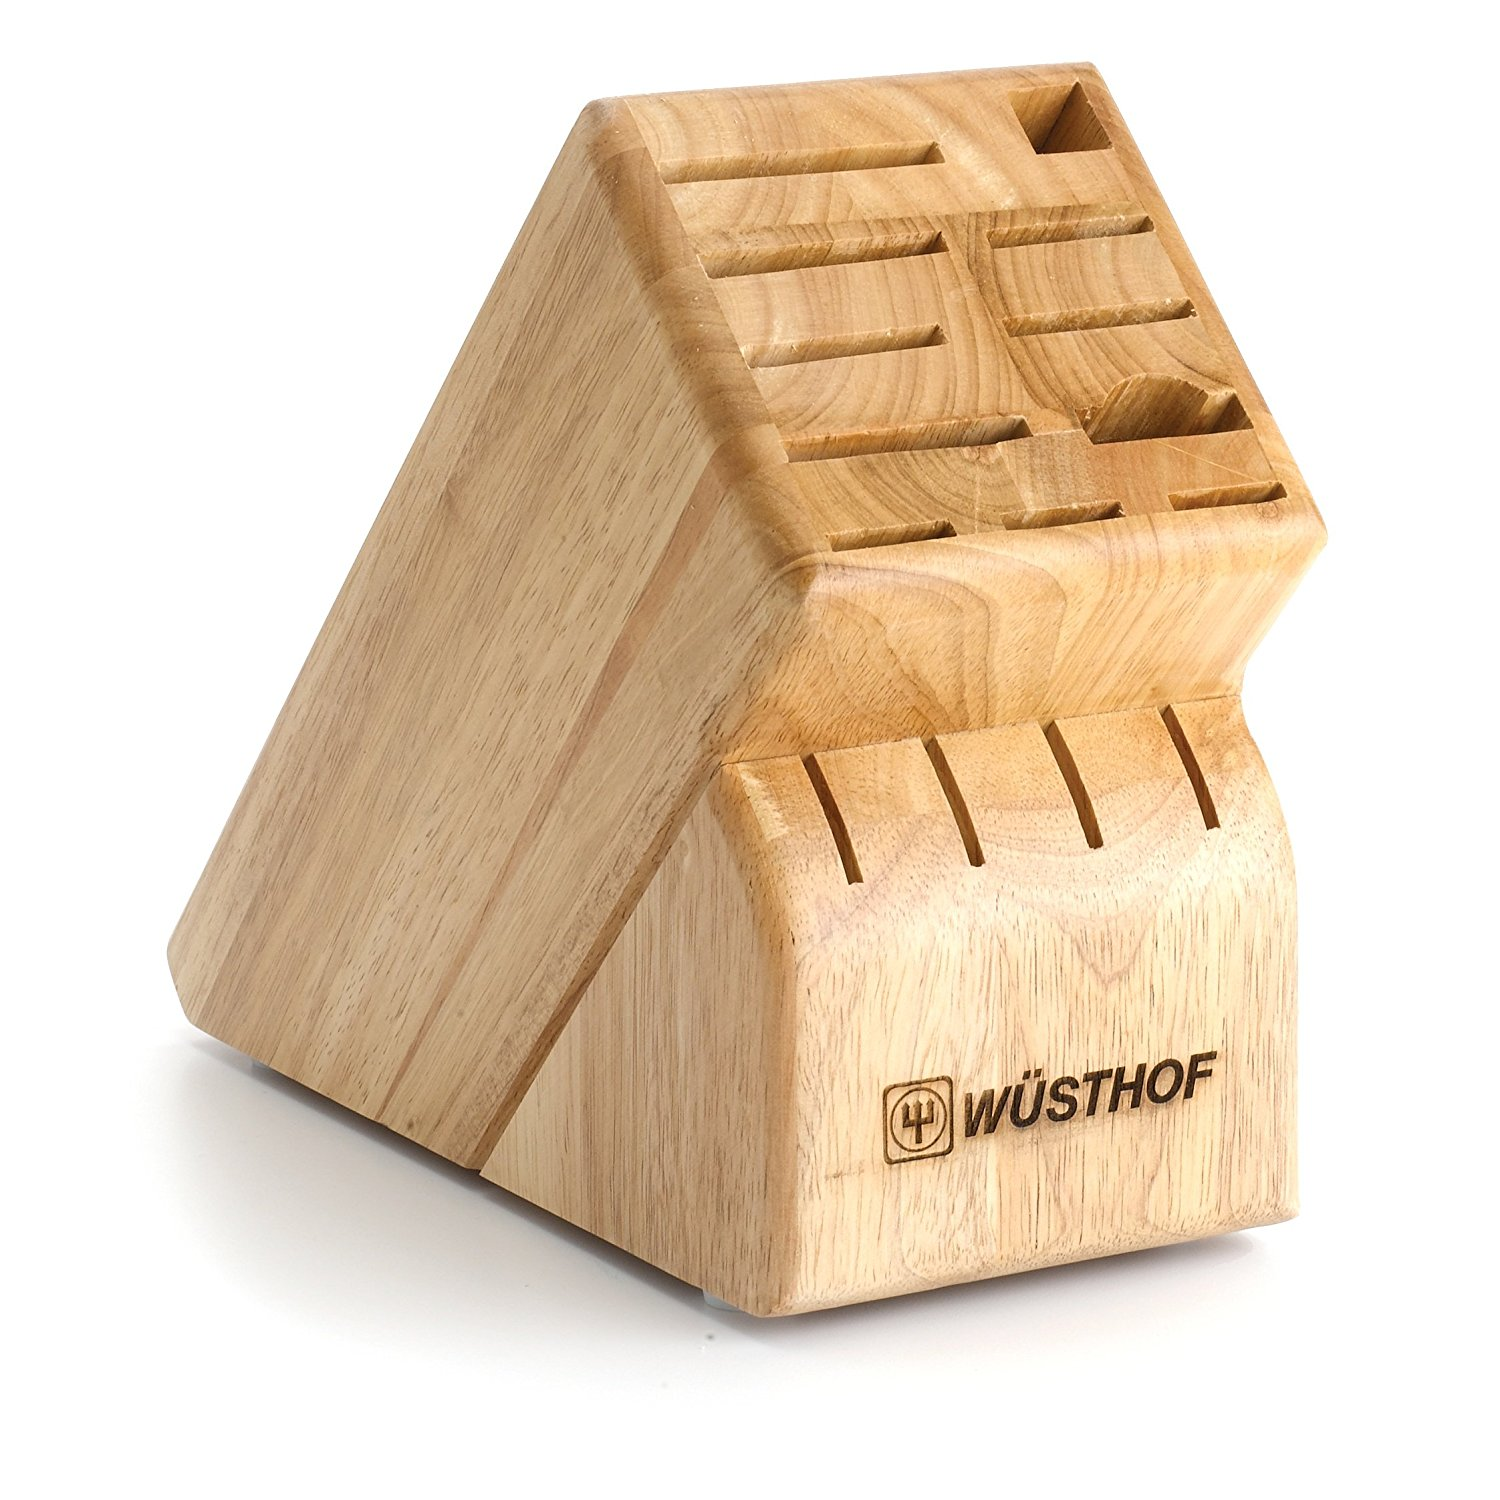 15-Slot Knife Block Finish: Natural, Ship from USA,Brand Wüsthof by